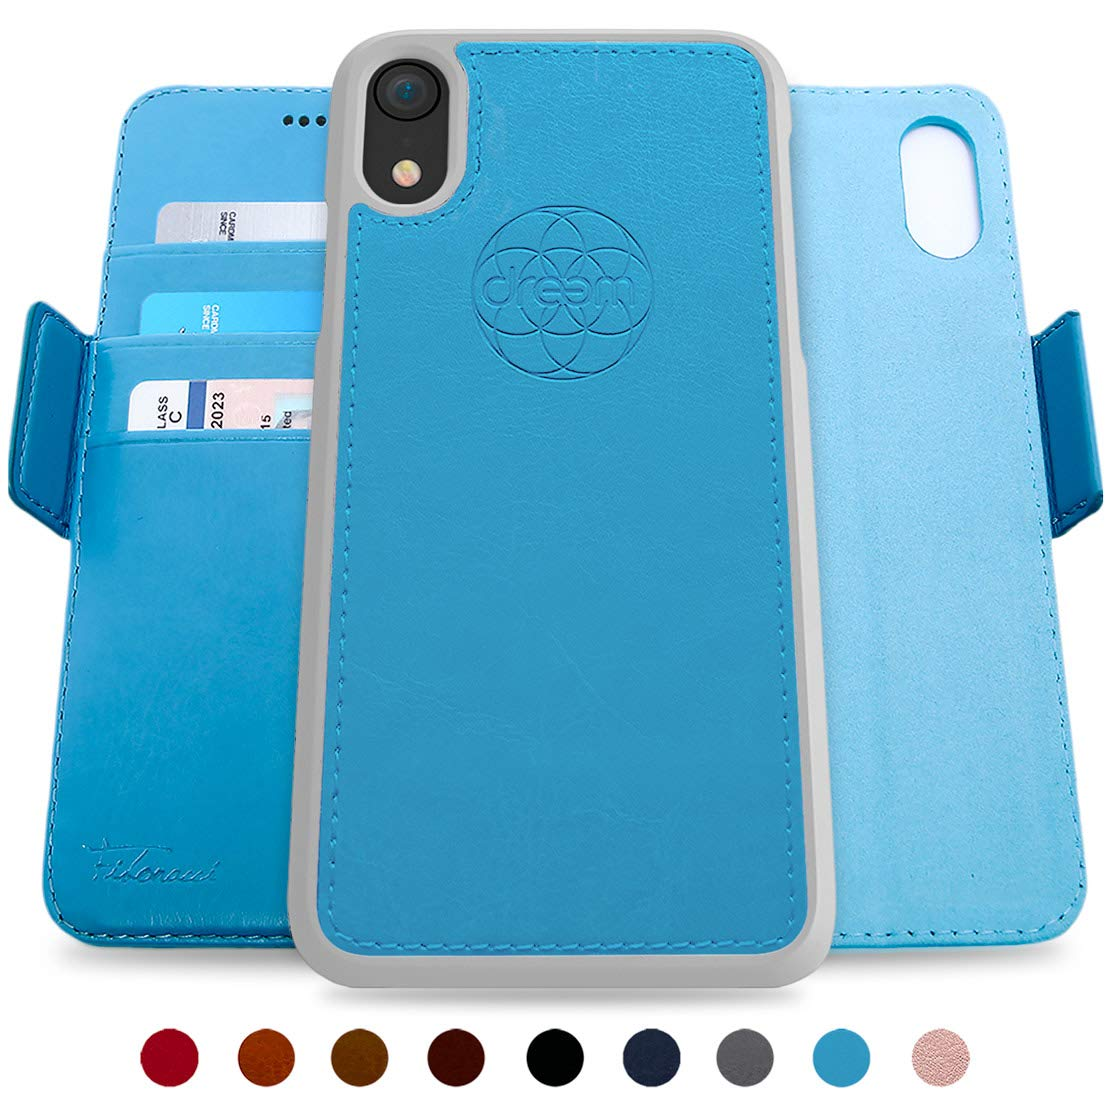 Caramel RFID Protection Dreem Fibonacci 2-in-1 Wallet-Case for iPhone 11 Luxury Vegan Leather 2-Way Stand Magnetic Detachable Shock-Proof TPU Slim-Case Gift-Box Wireless Charging OK